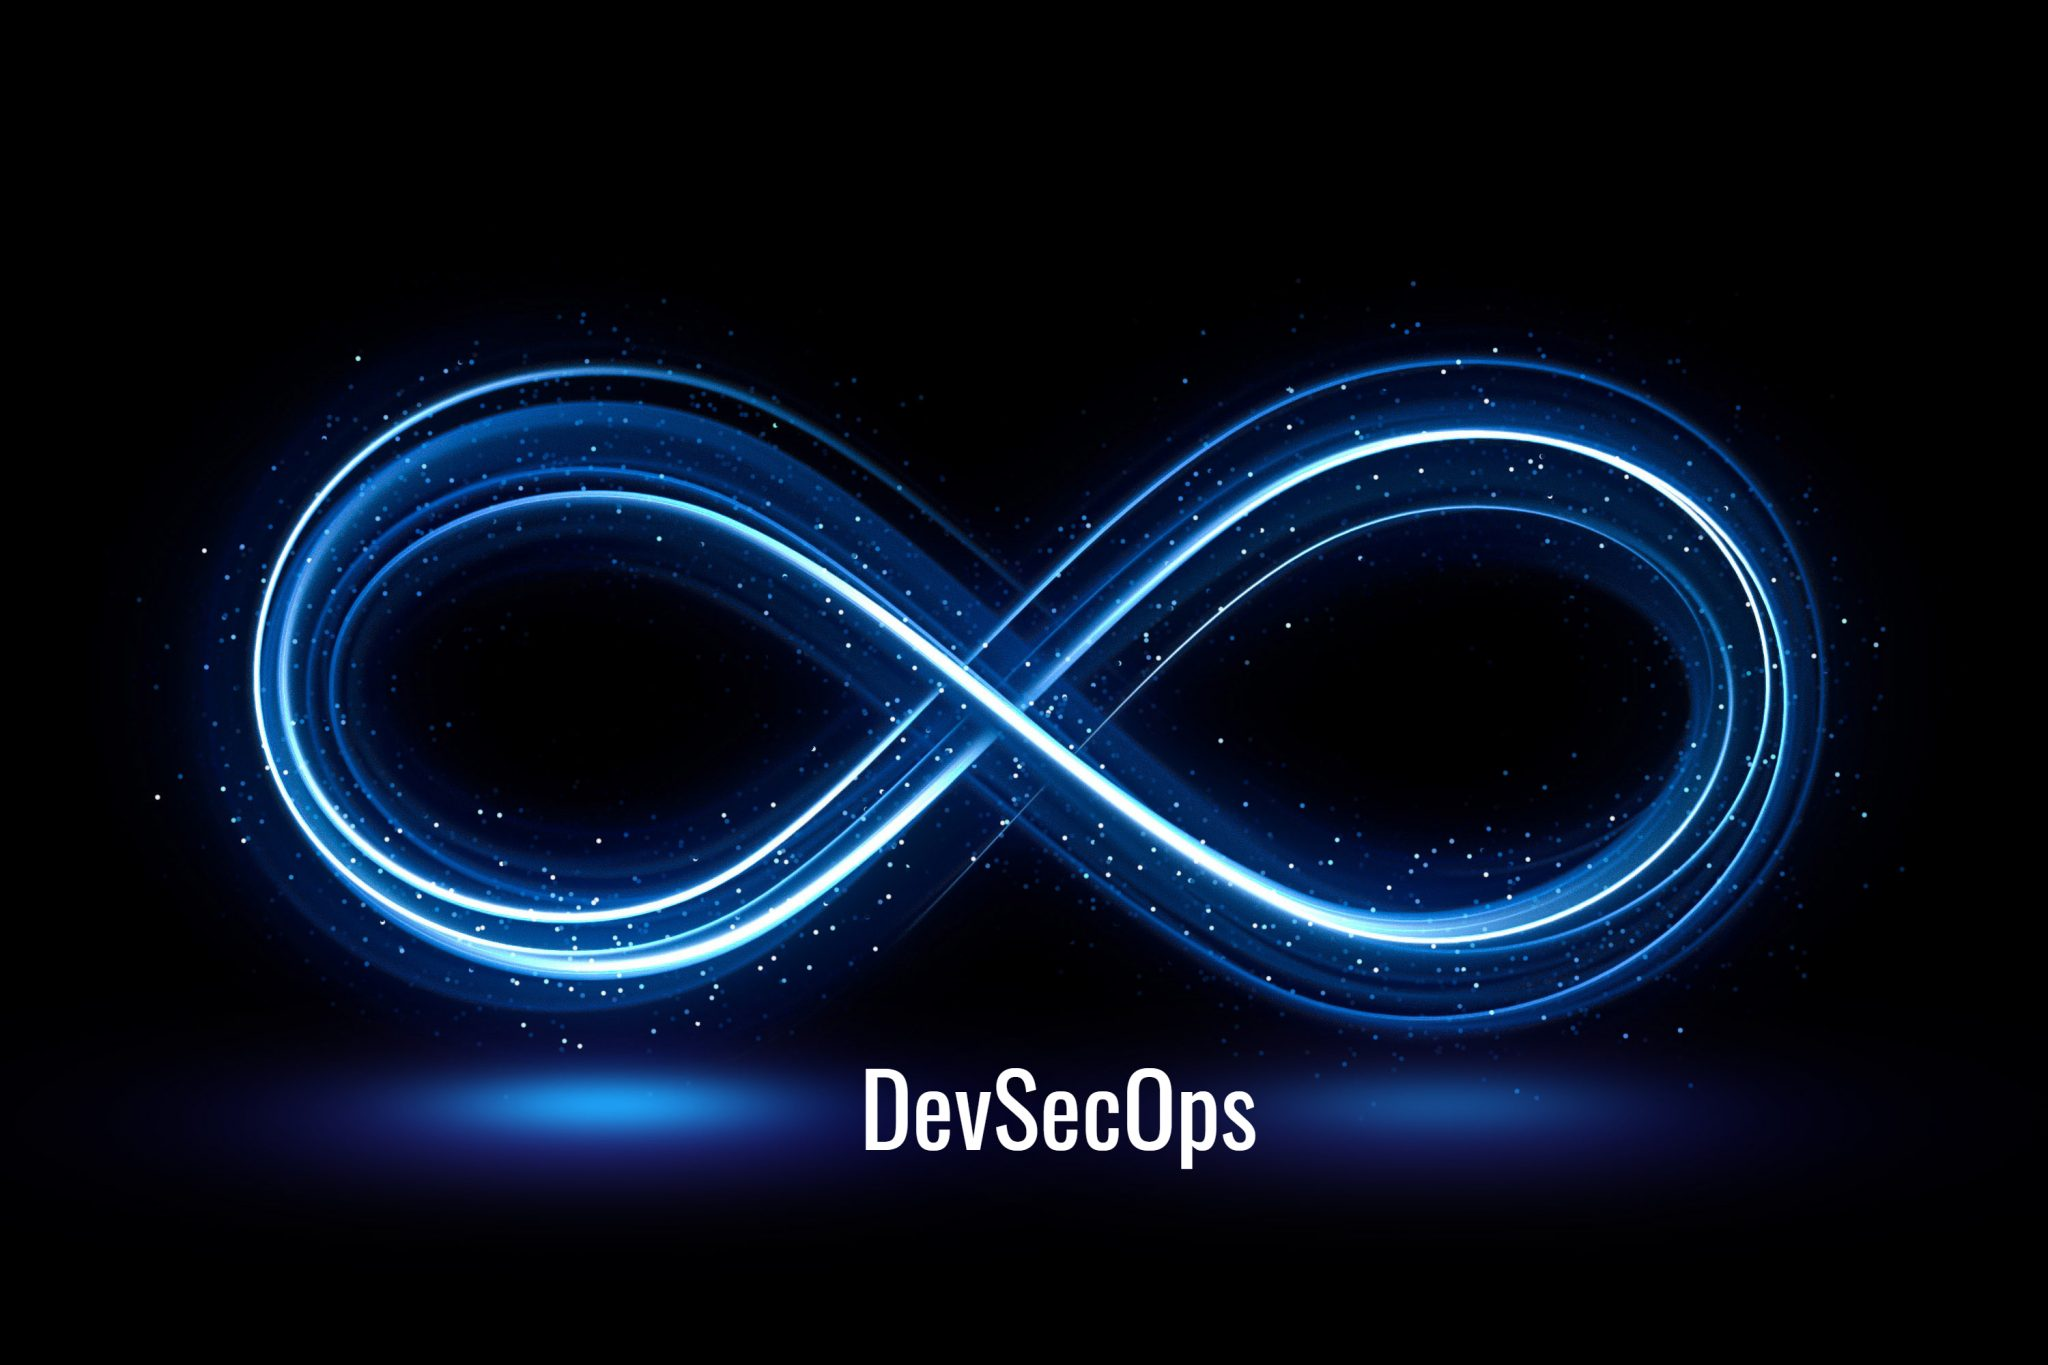 Rise of DevSecOps Market is Game Changer of IT Sector | IBM, Microsoft, Google, CA Technologies